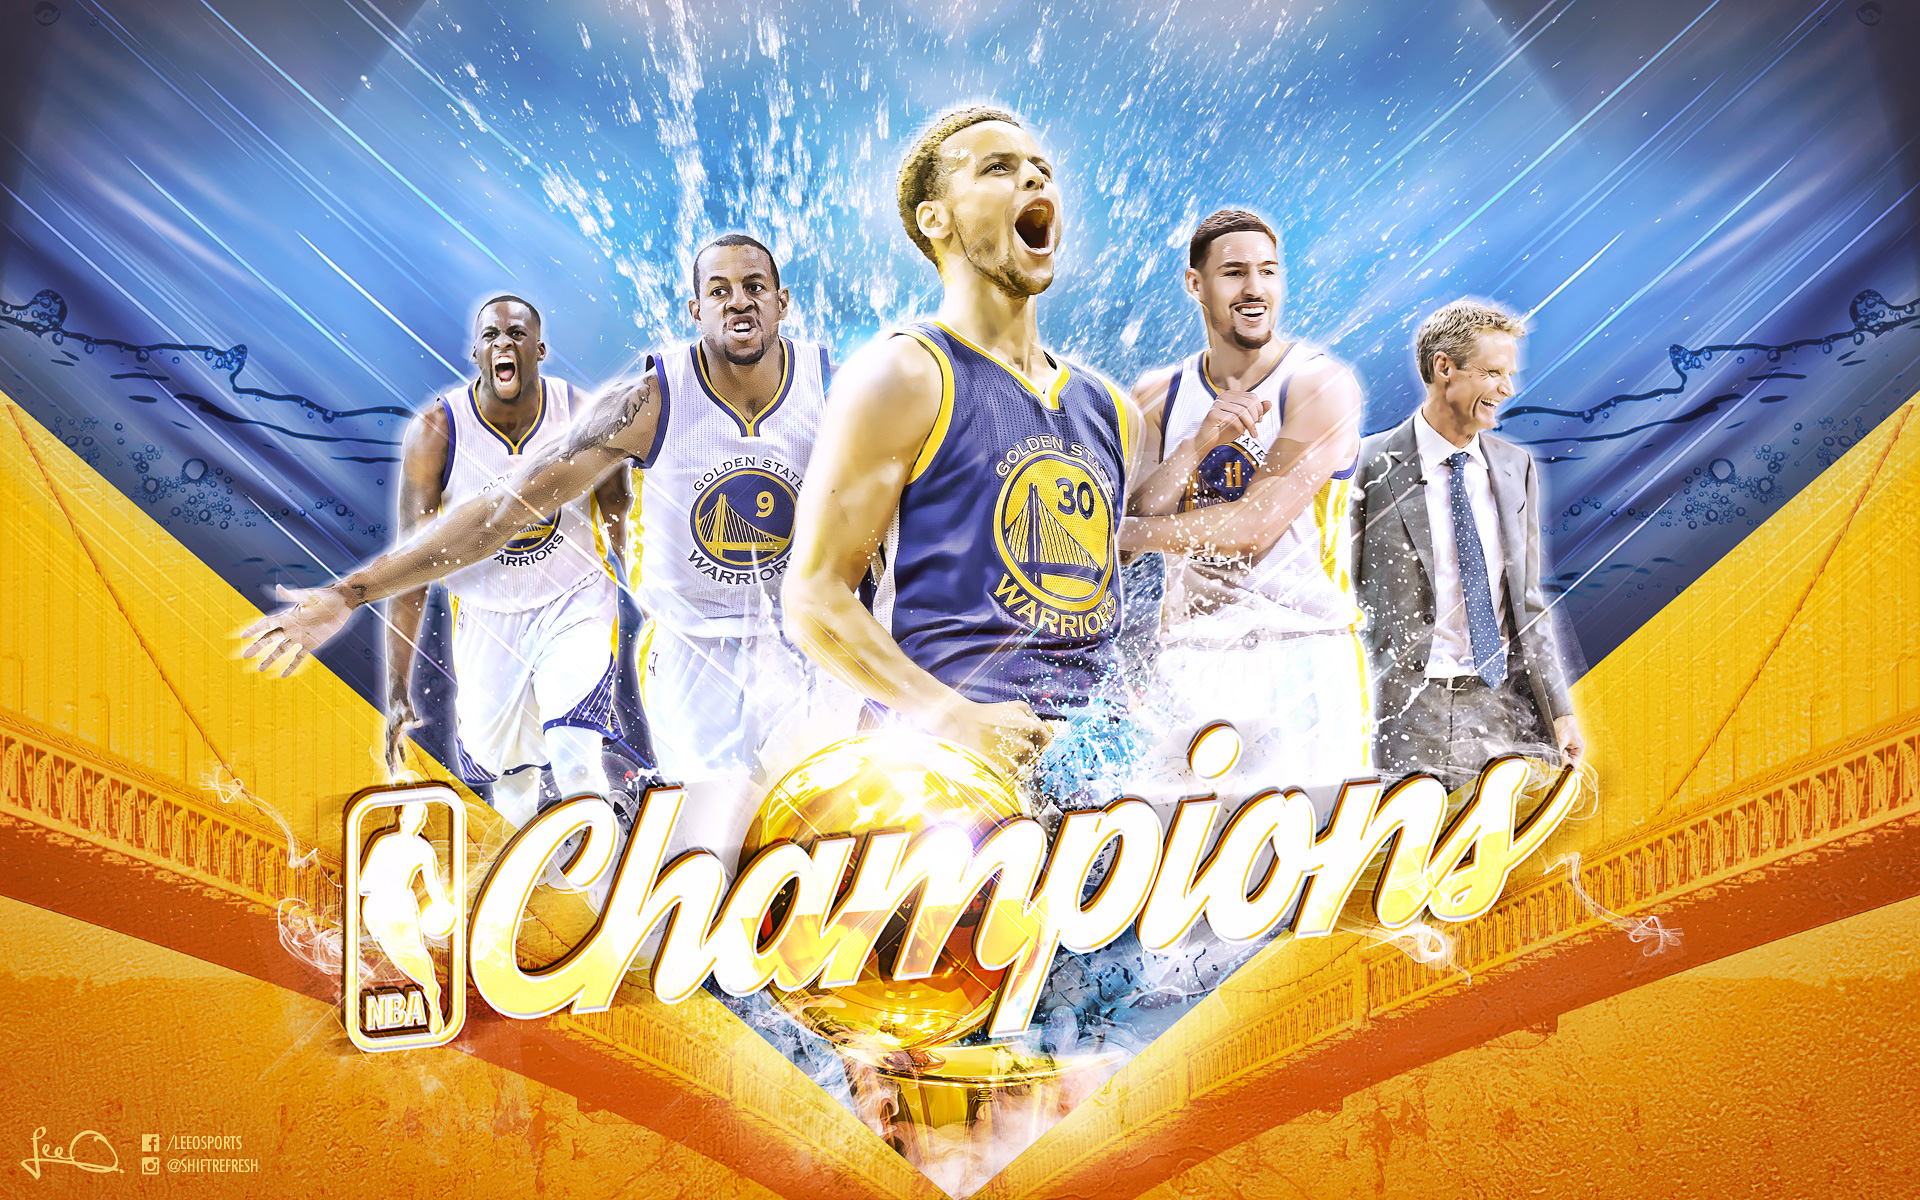 Golden State Warriors Wallpapers | Basketball Wallpapers at